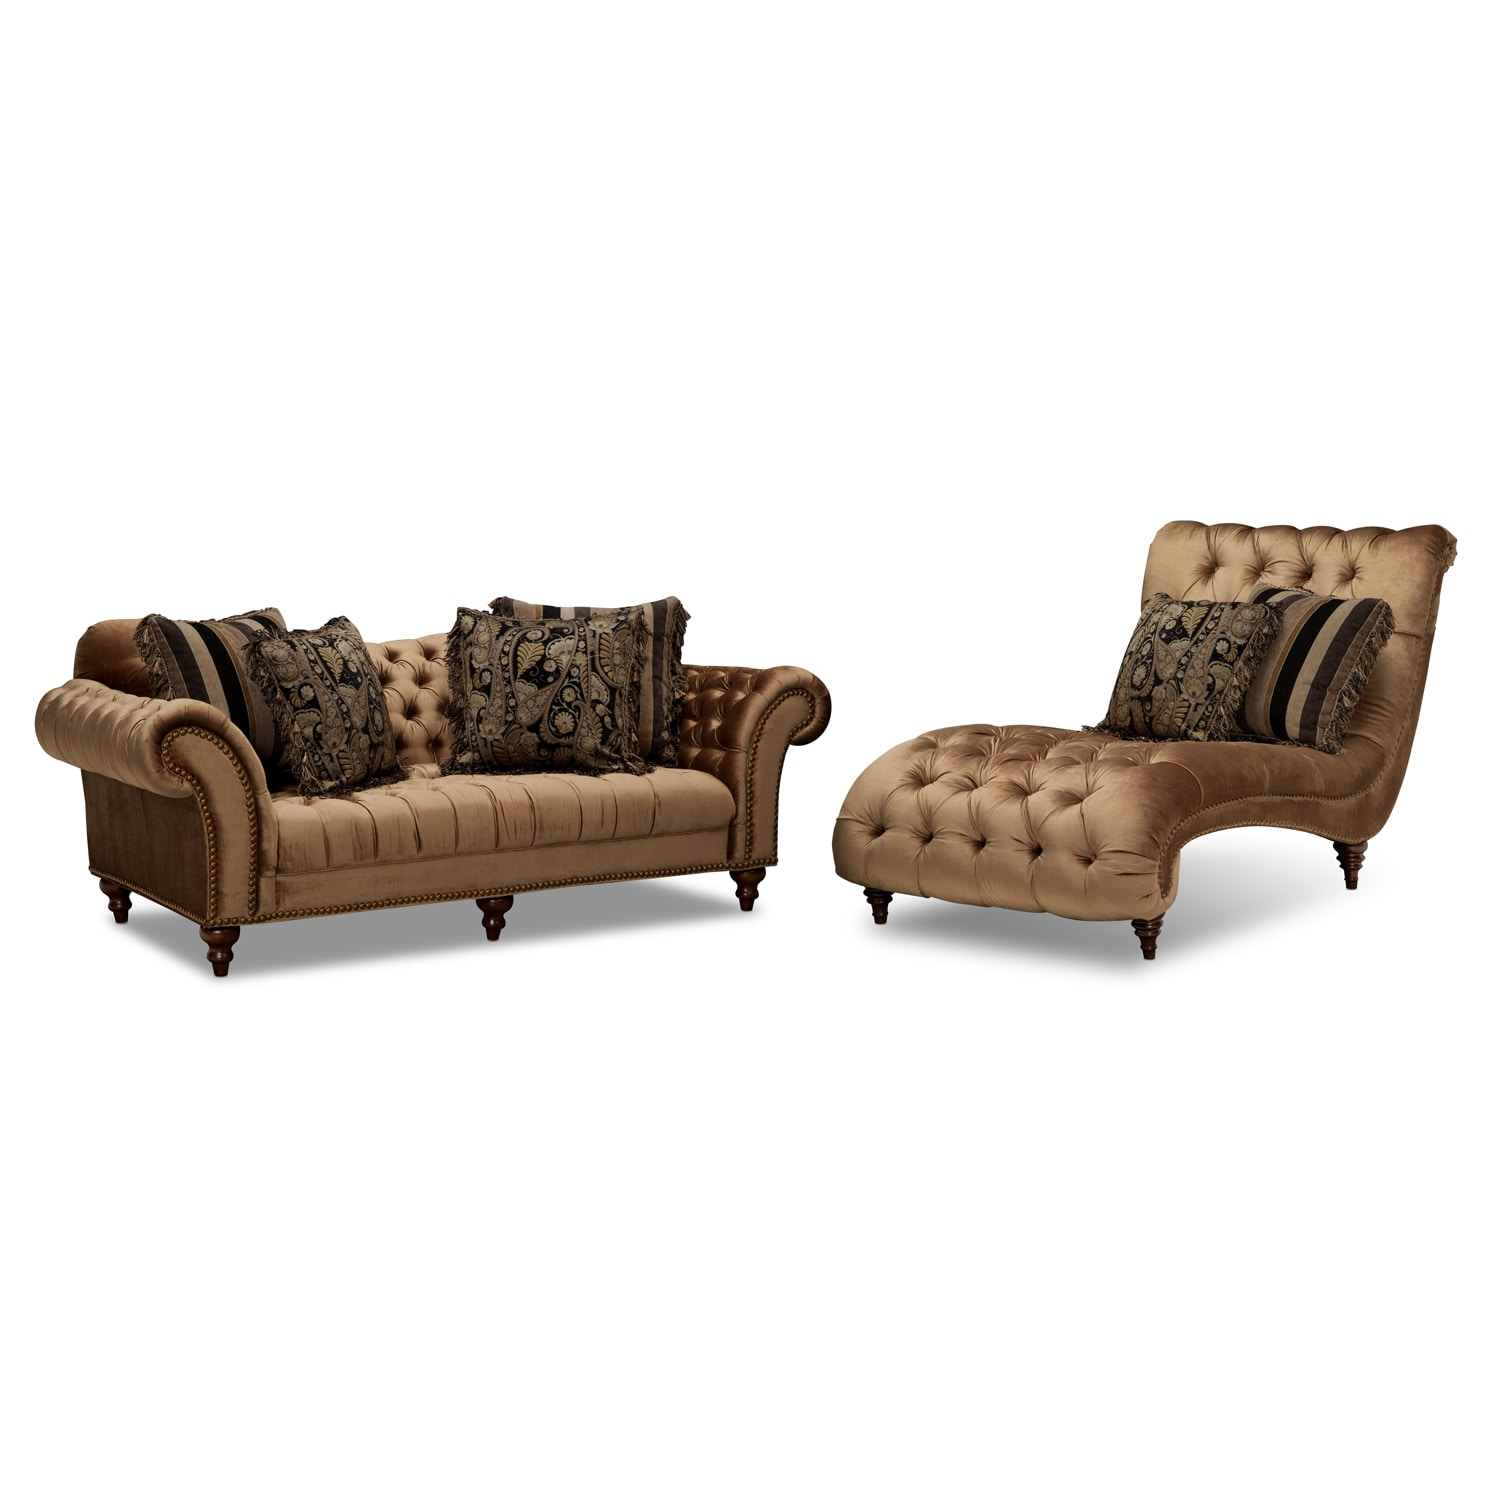 Living Room Furniture - Brittney Sofa and Chaise Set